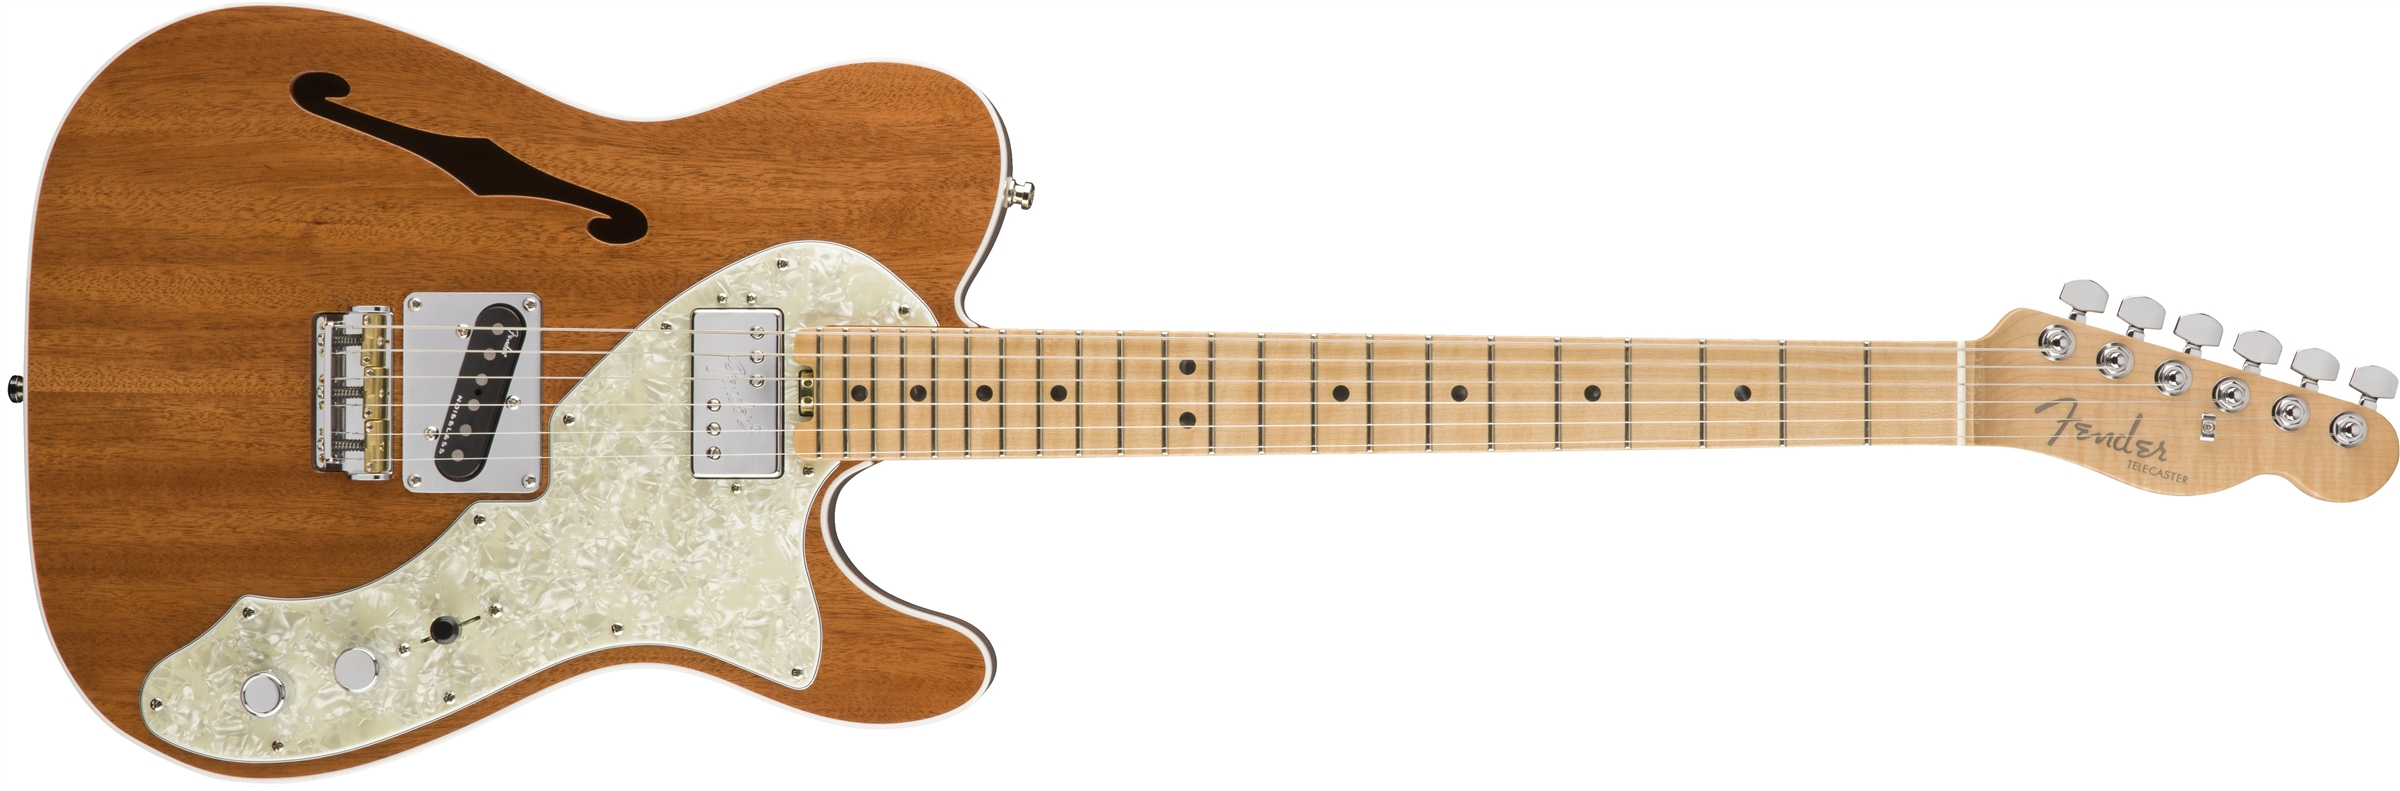 0175103721_gtr_frt_001_rr fender 2017 limited edition american elite mahogany tele� thinline  at gsmportal.co